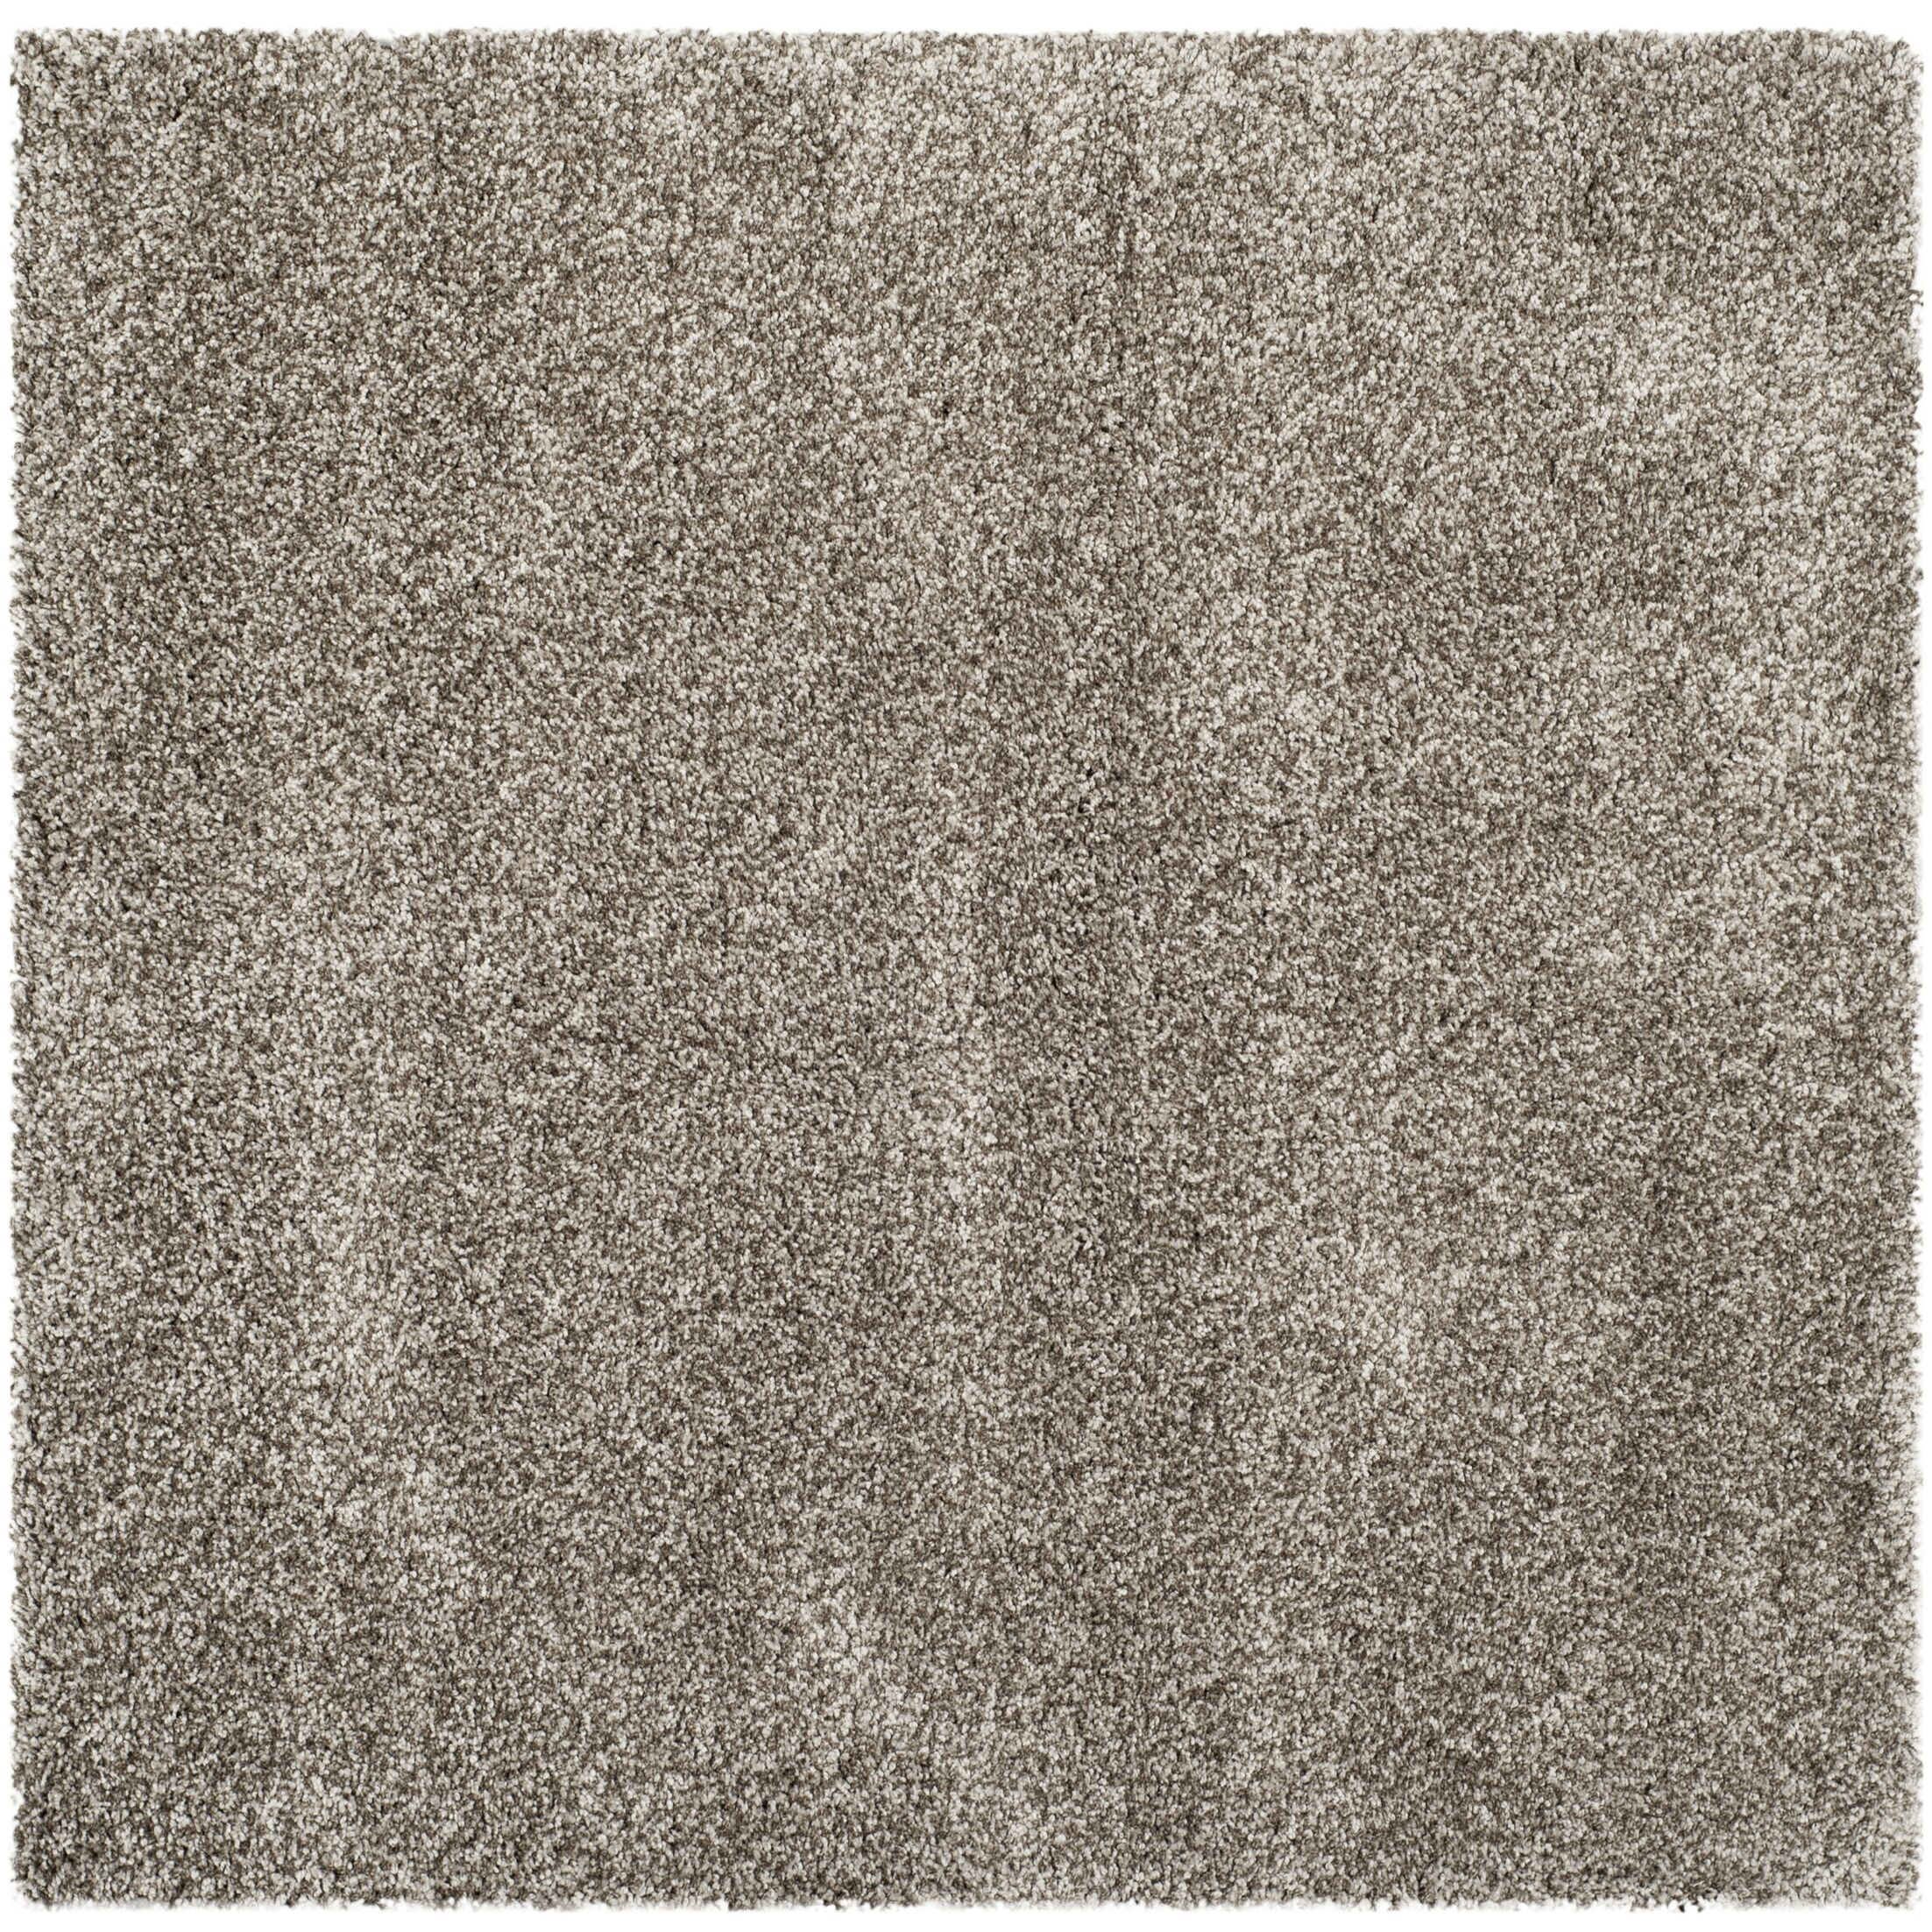 Starr Hill Grey Area Rug Rug Size: Square 7'